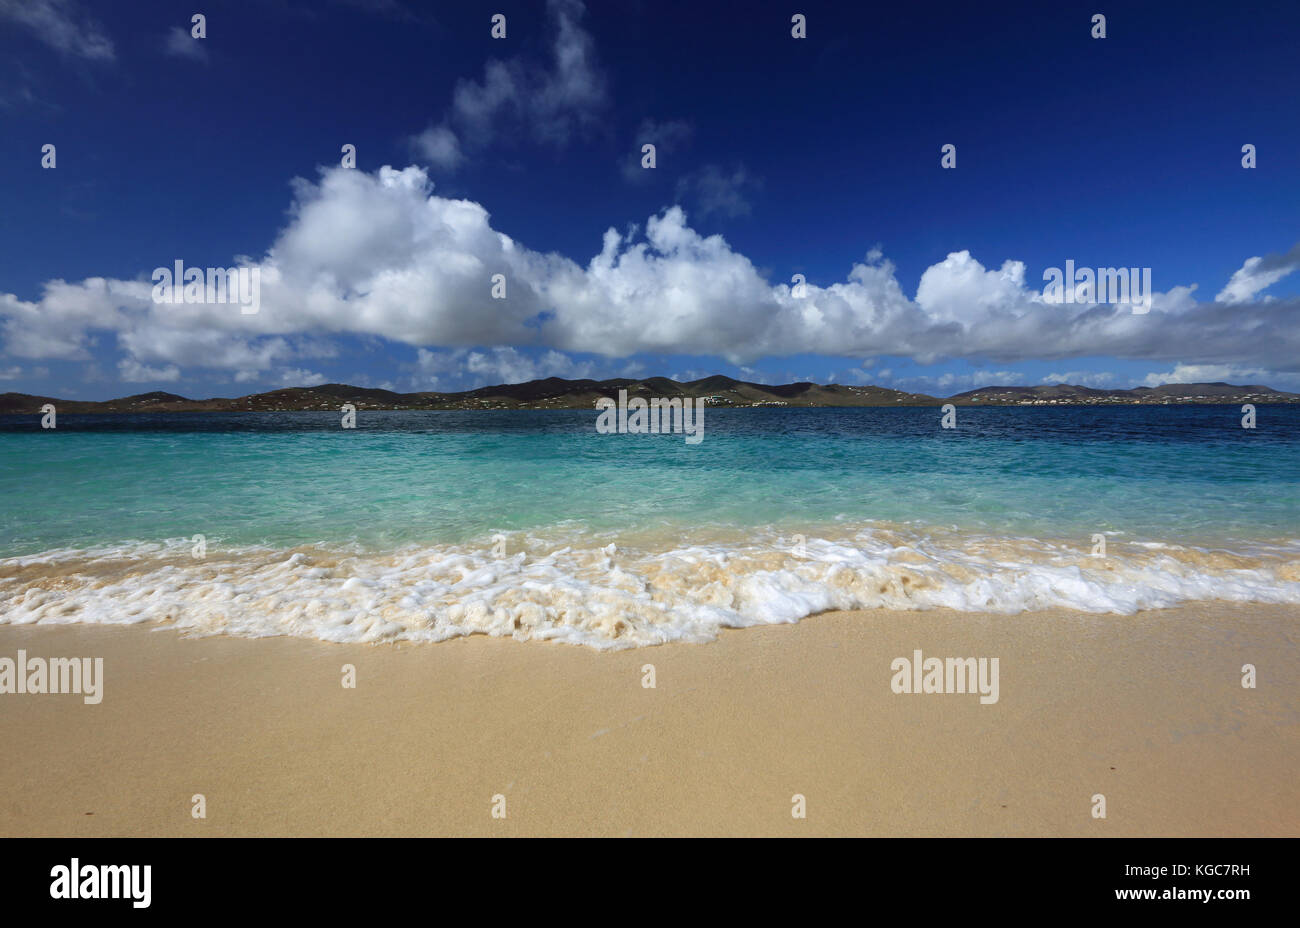 With the island of St. Croix off in the distance, gentle waves crash on the pristine shorelin of nearby Buck Island - Stock Image